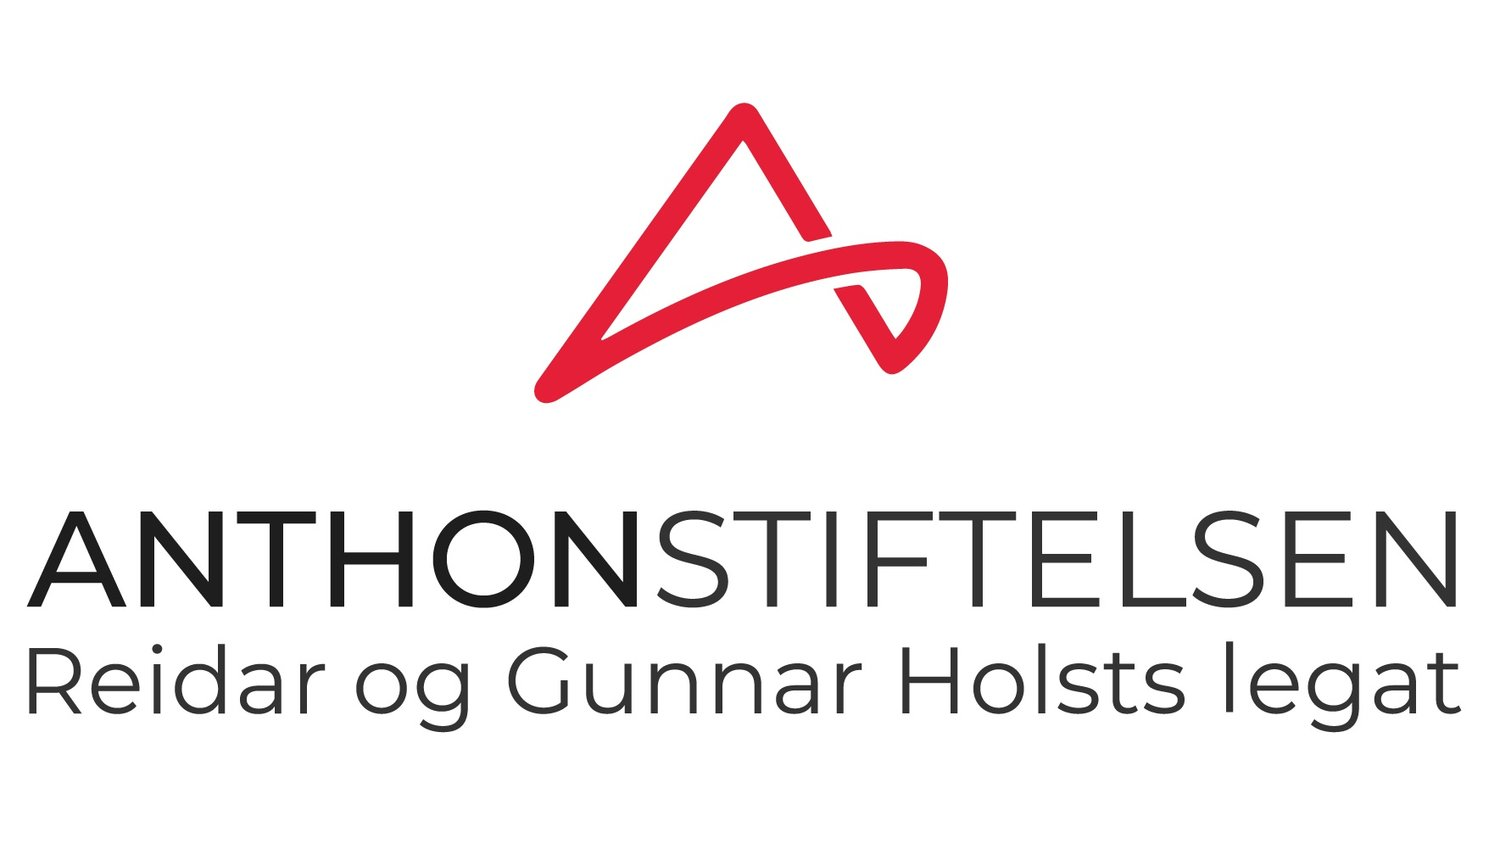 Anthonstiftelsen